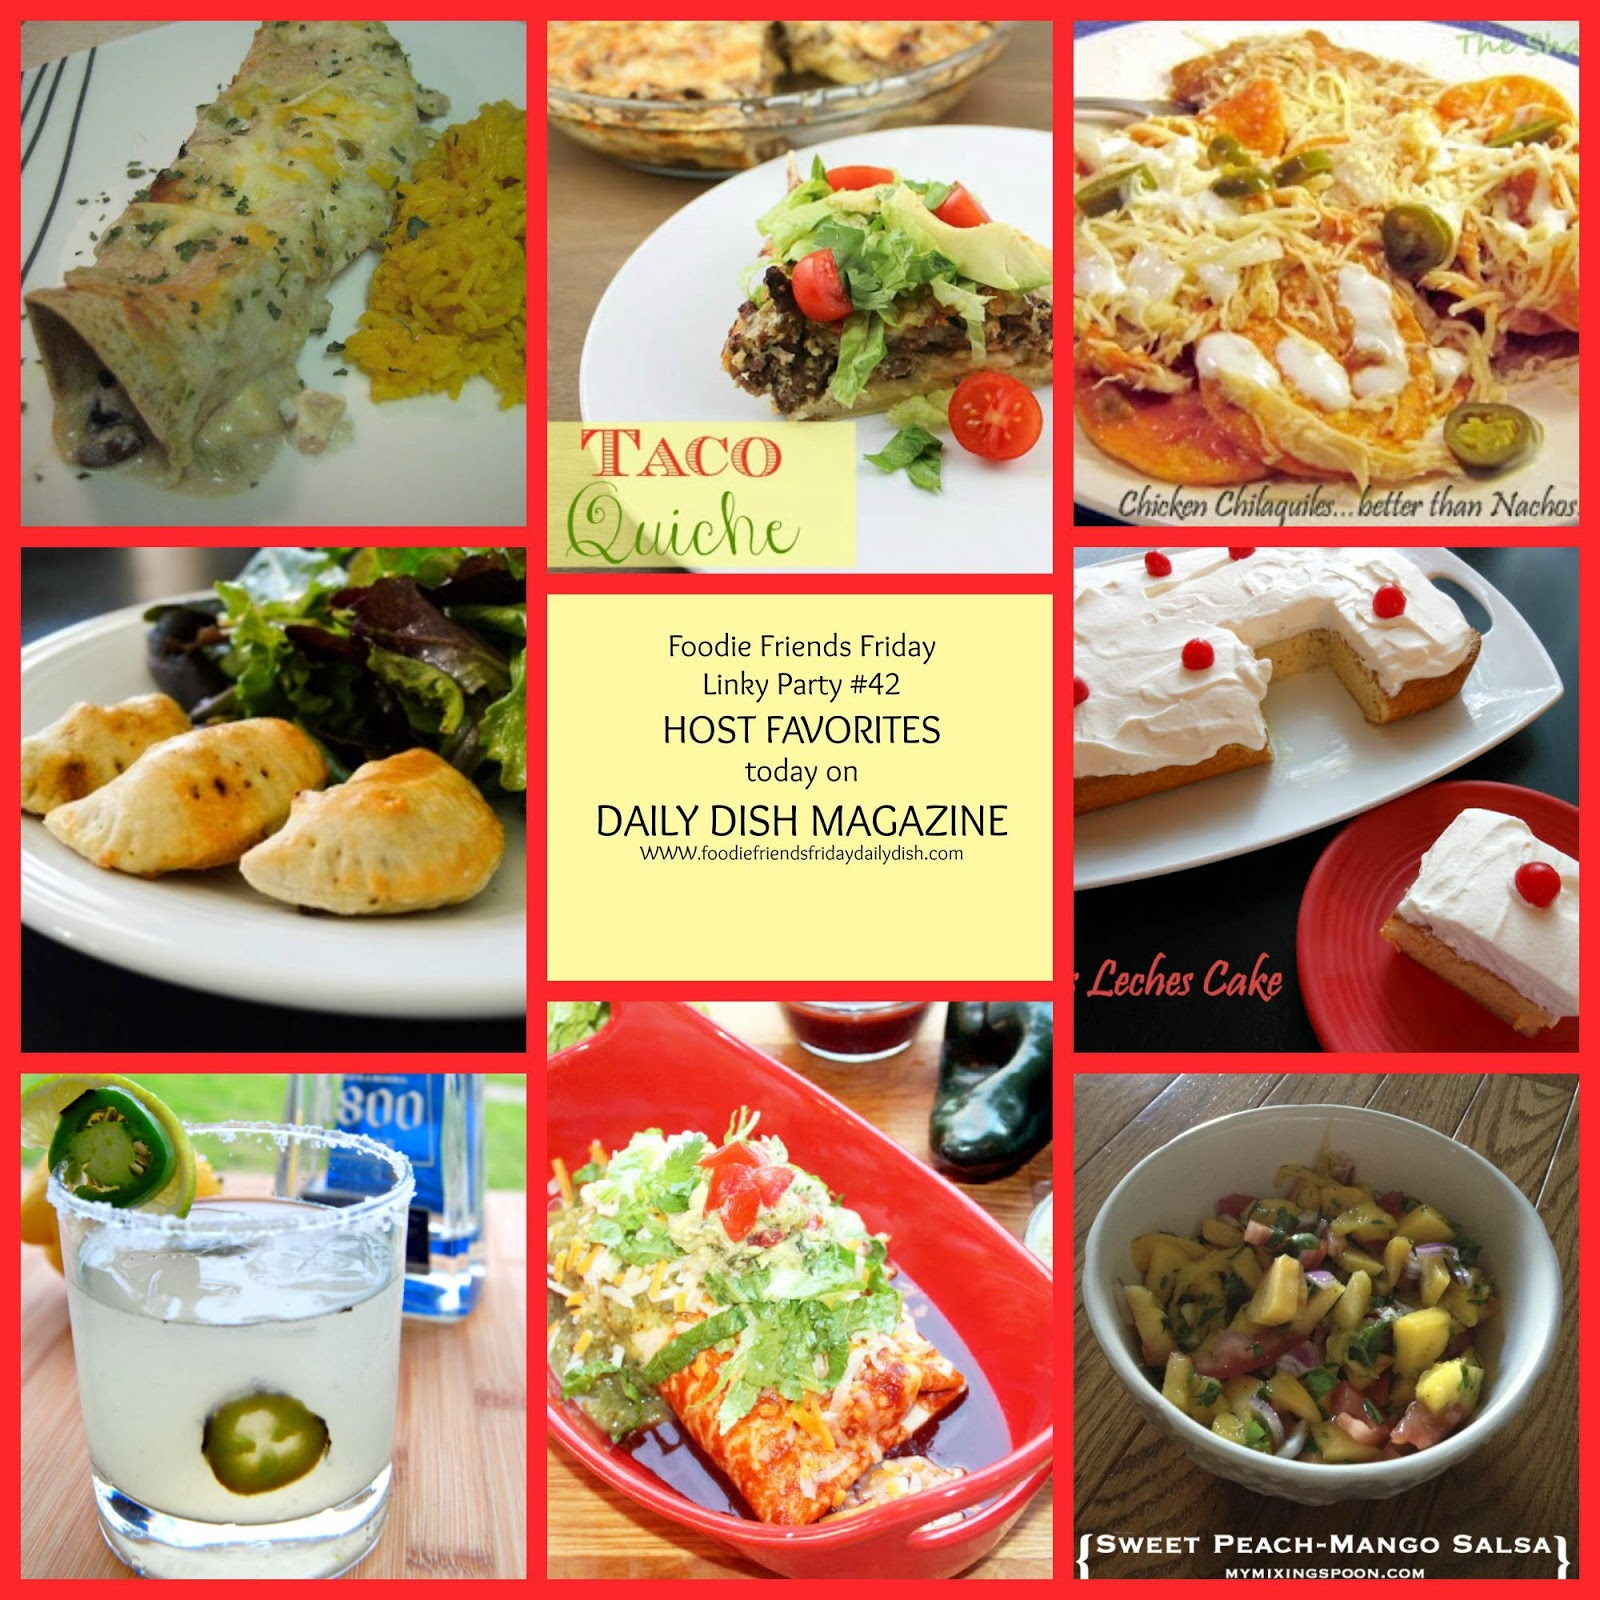 http://www.foodiefriendsfridaydailydish.com/recipes-that-caught-our-attention-14/?fb_source=pubv1